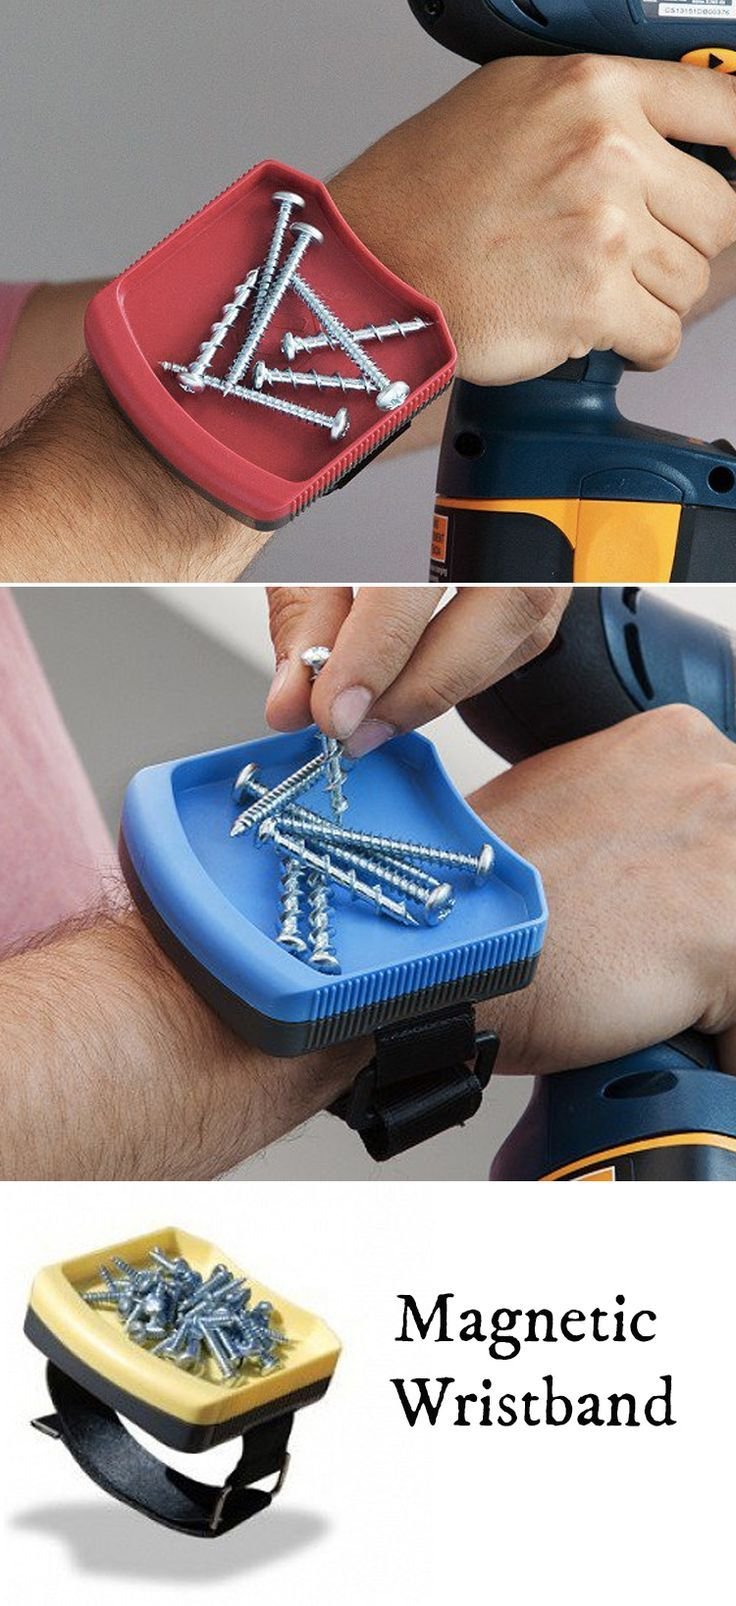 This magnetic wristband uses a high grade rare earth magnet to hold most hardware, tools, pins, and other metallic objects over your wrist.